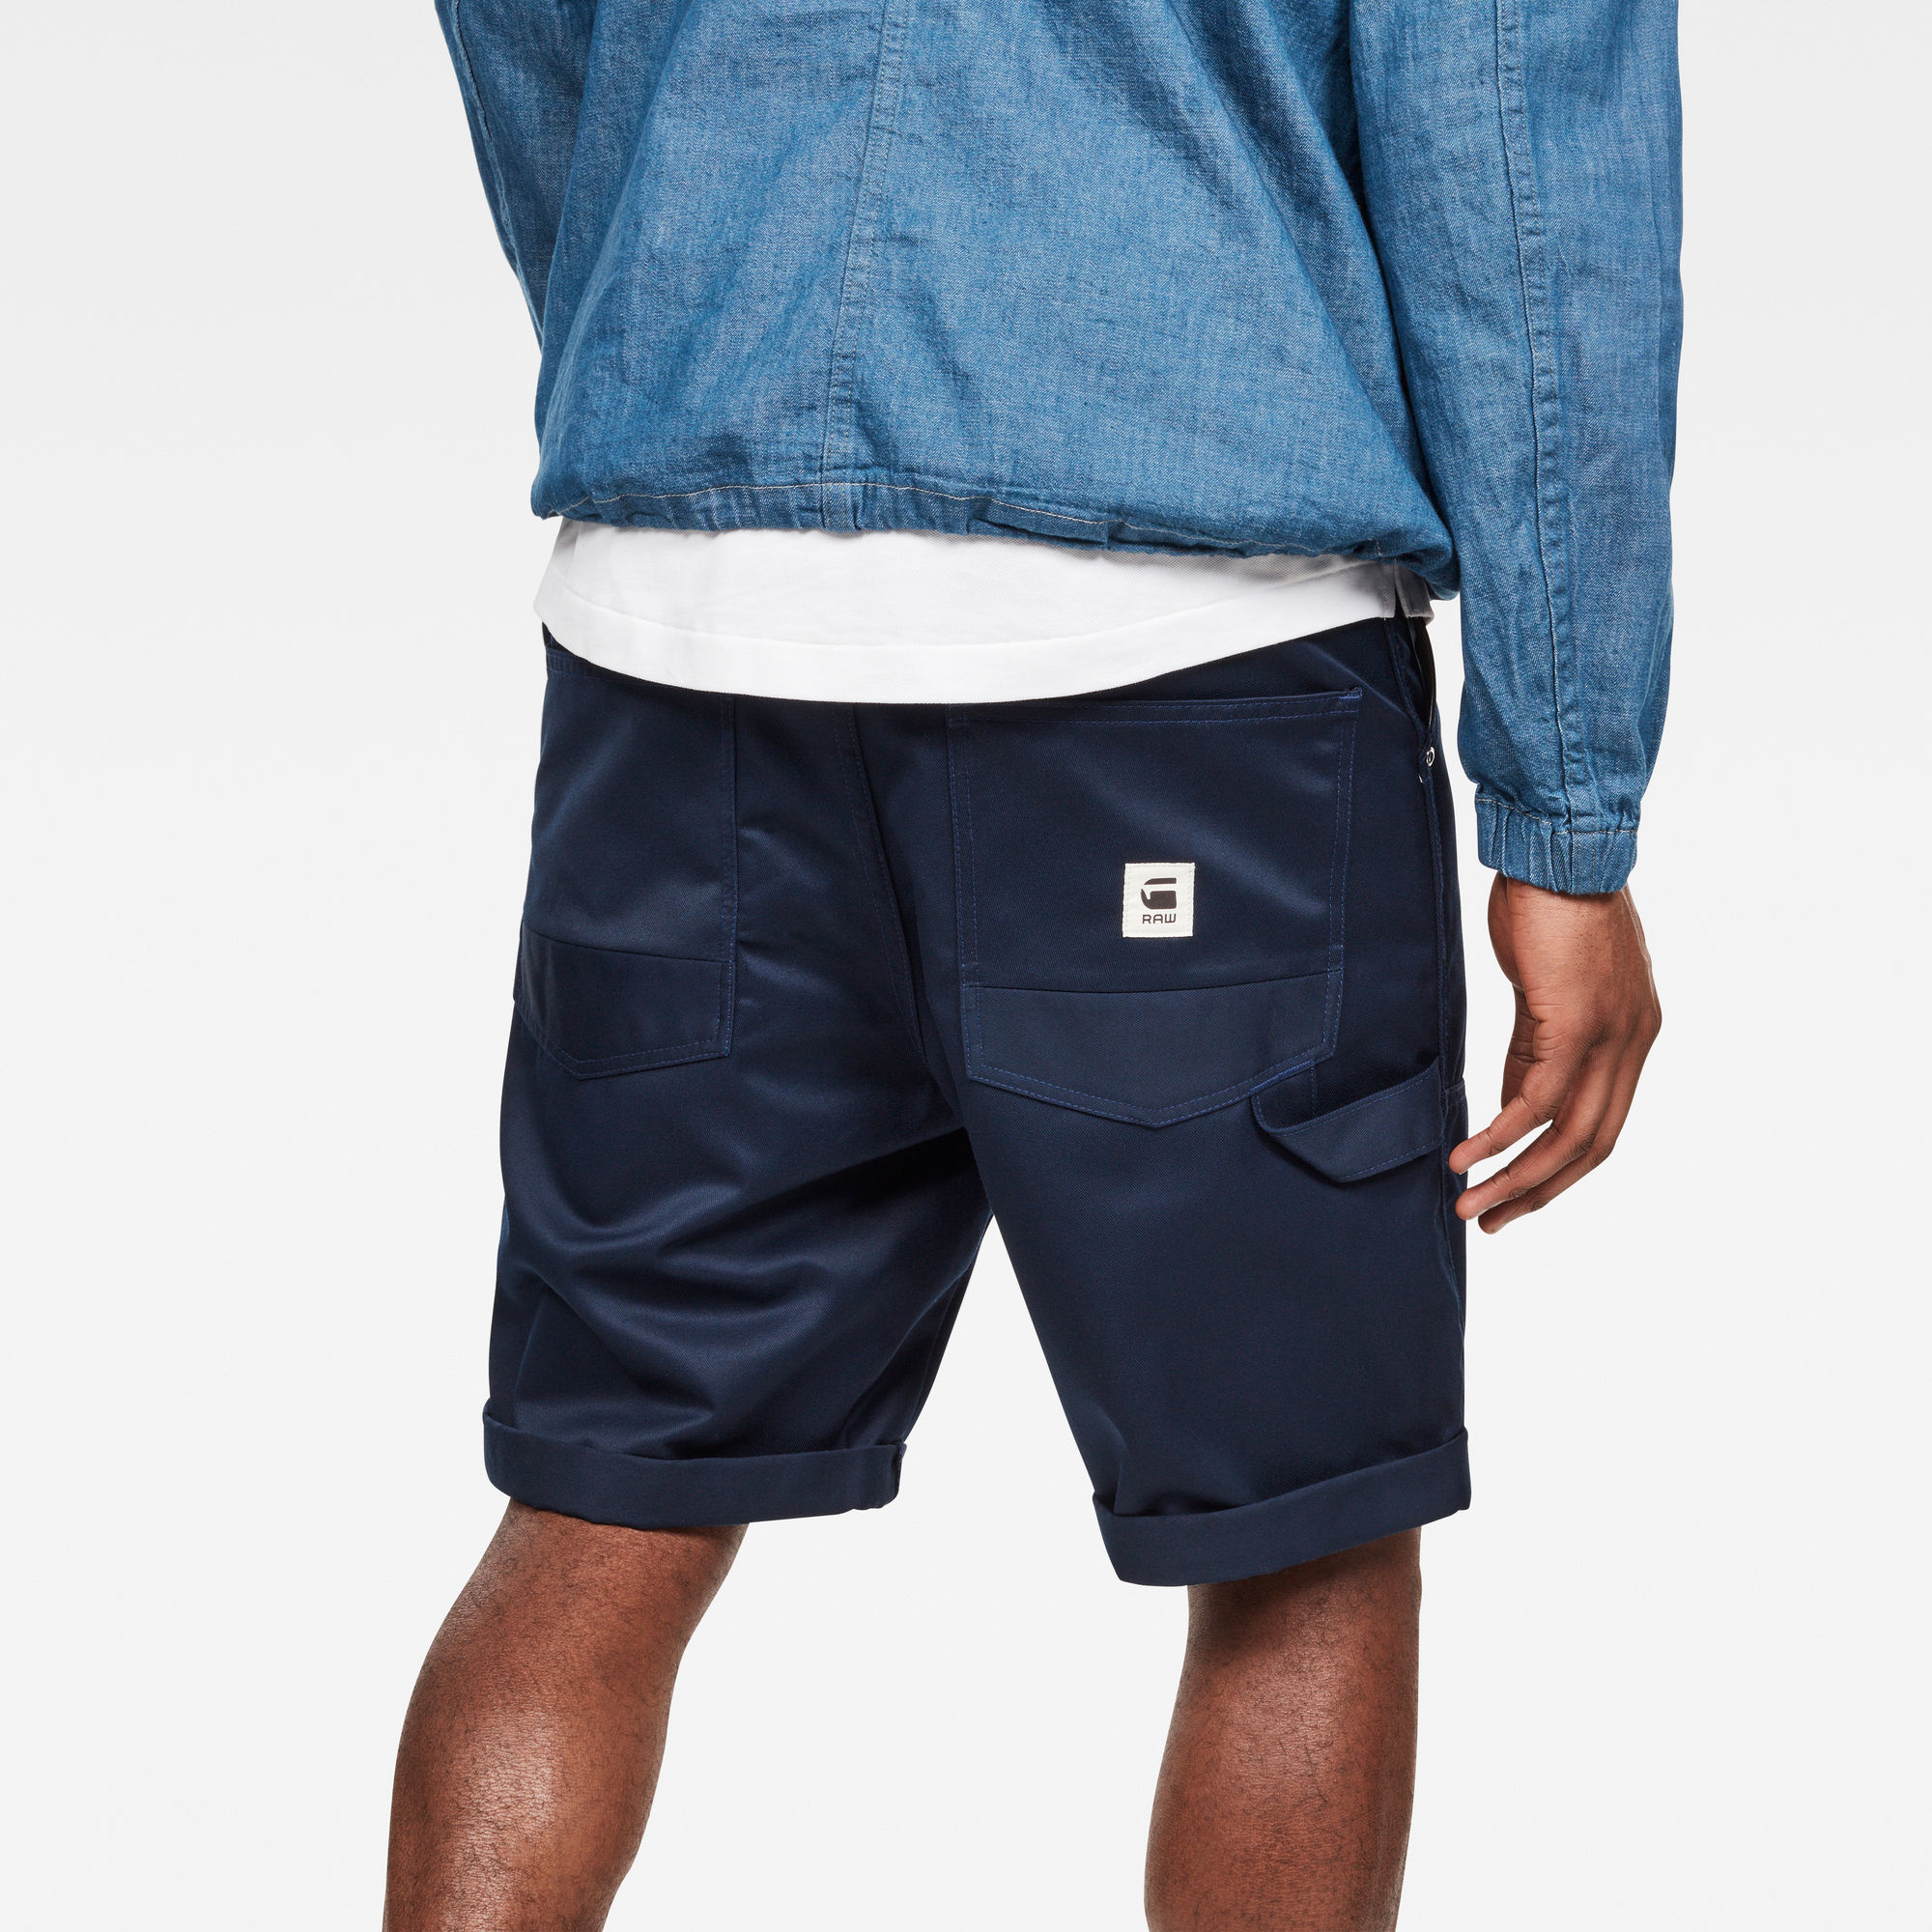 G-Star RAW Faeroes Relaxed Short